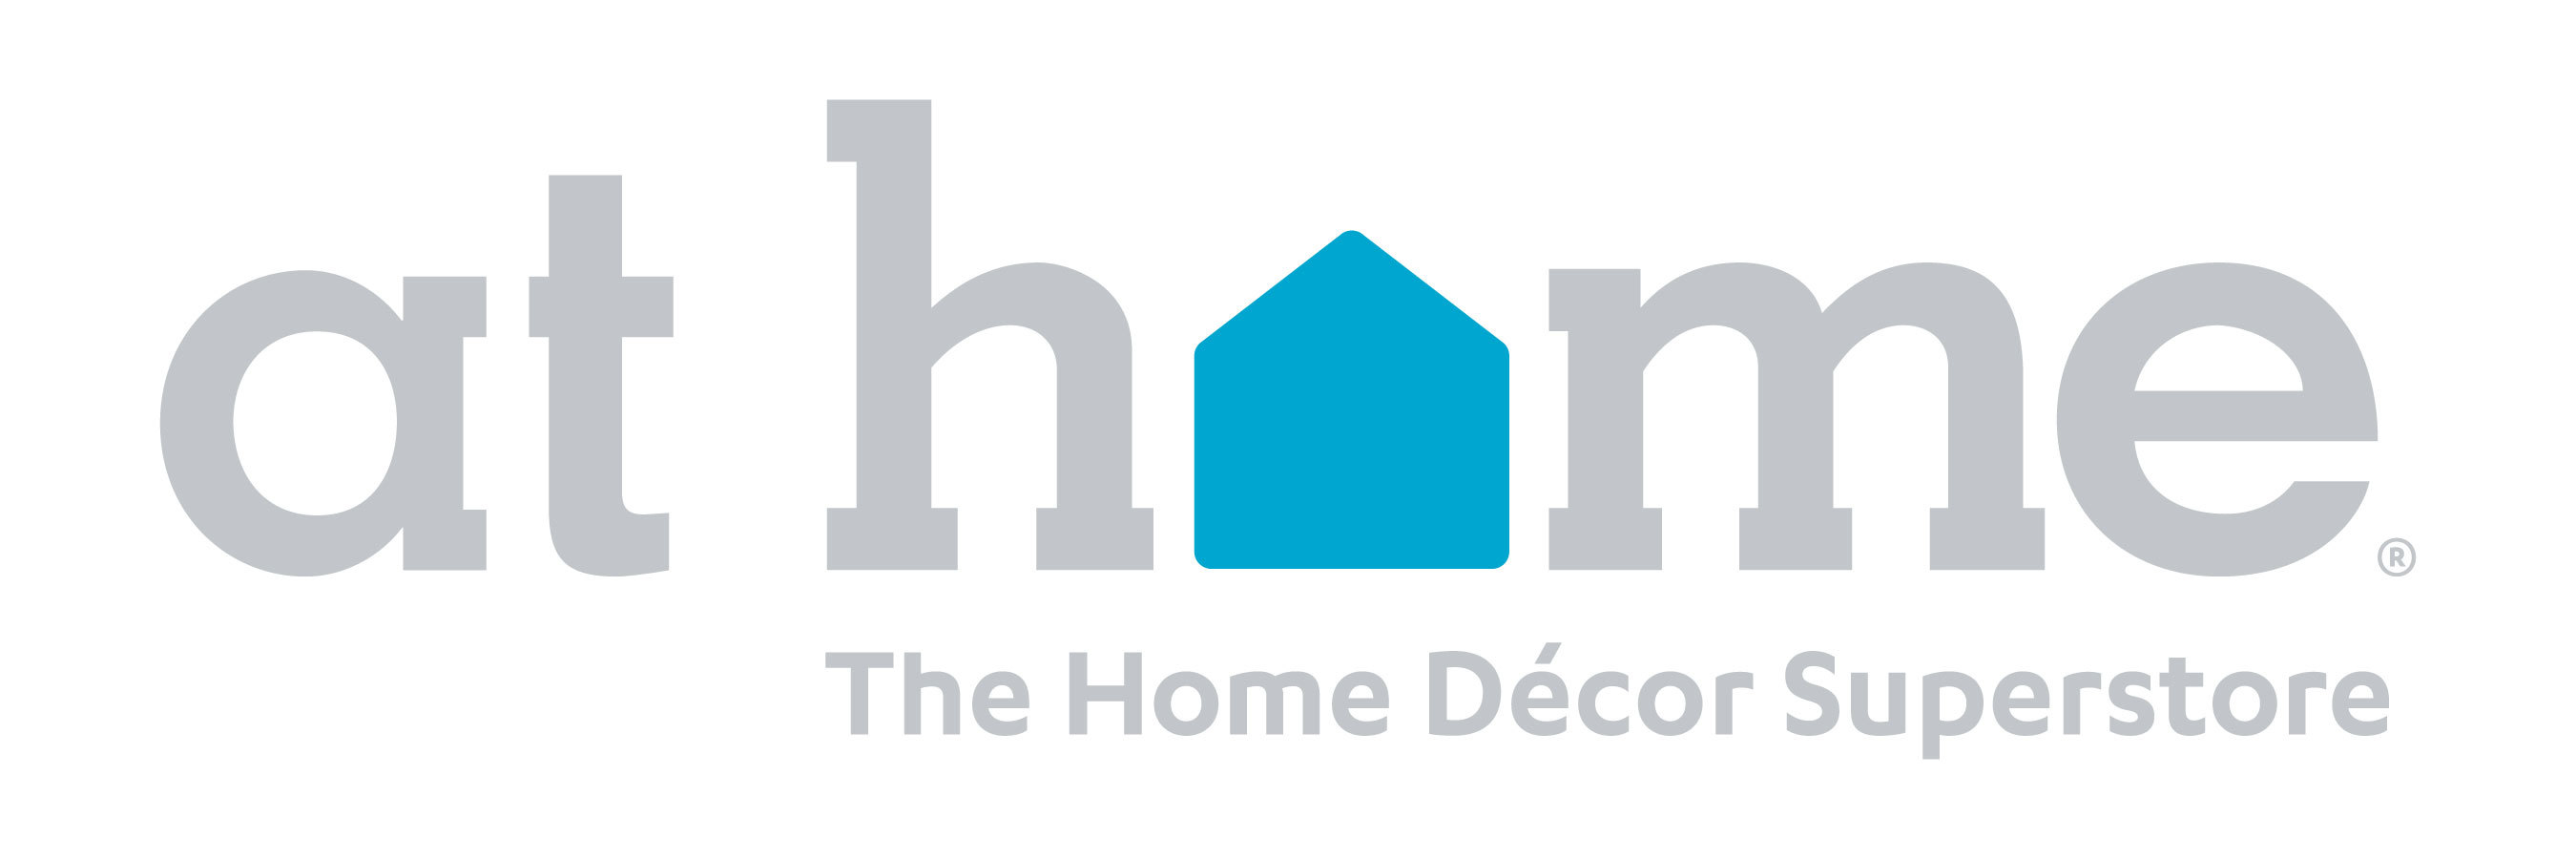 Synchrony Financial And At Home® Introduce Consumer Financing Program For  The Home Décor Superstore | Business Wire